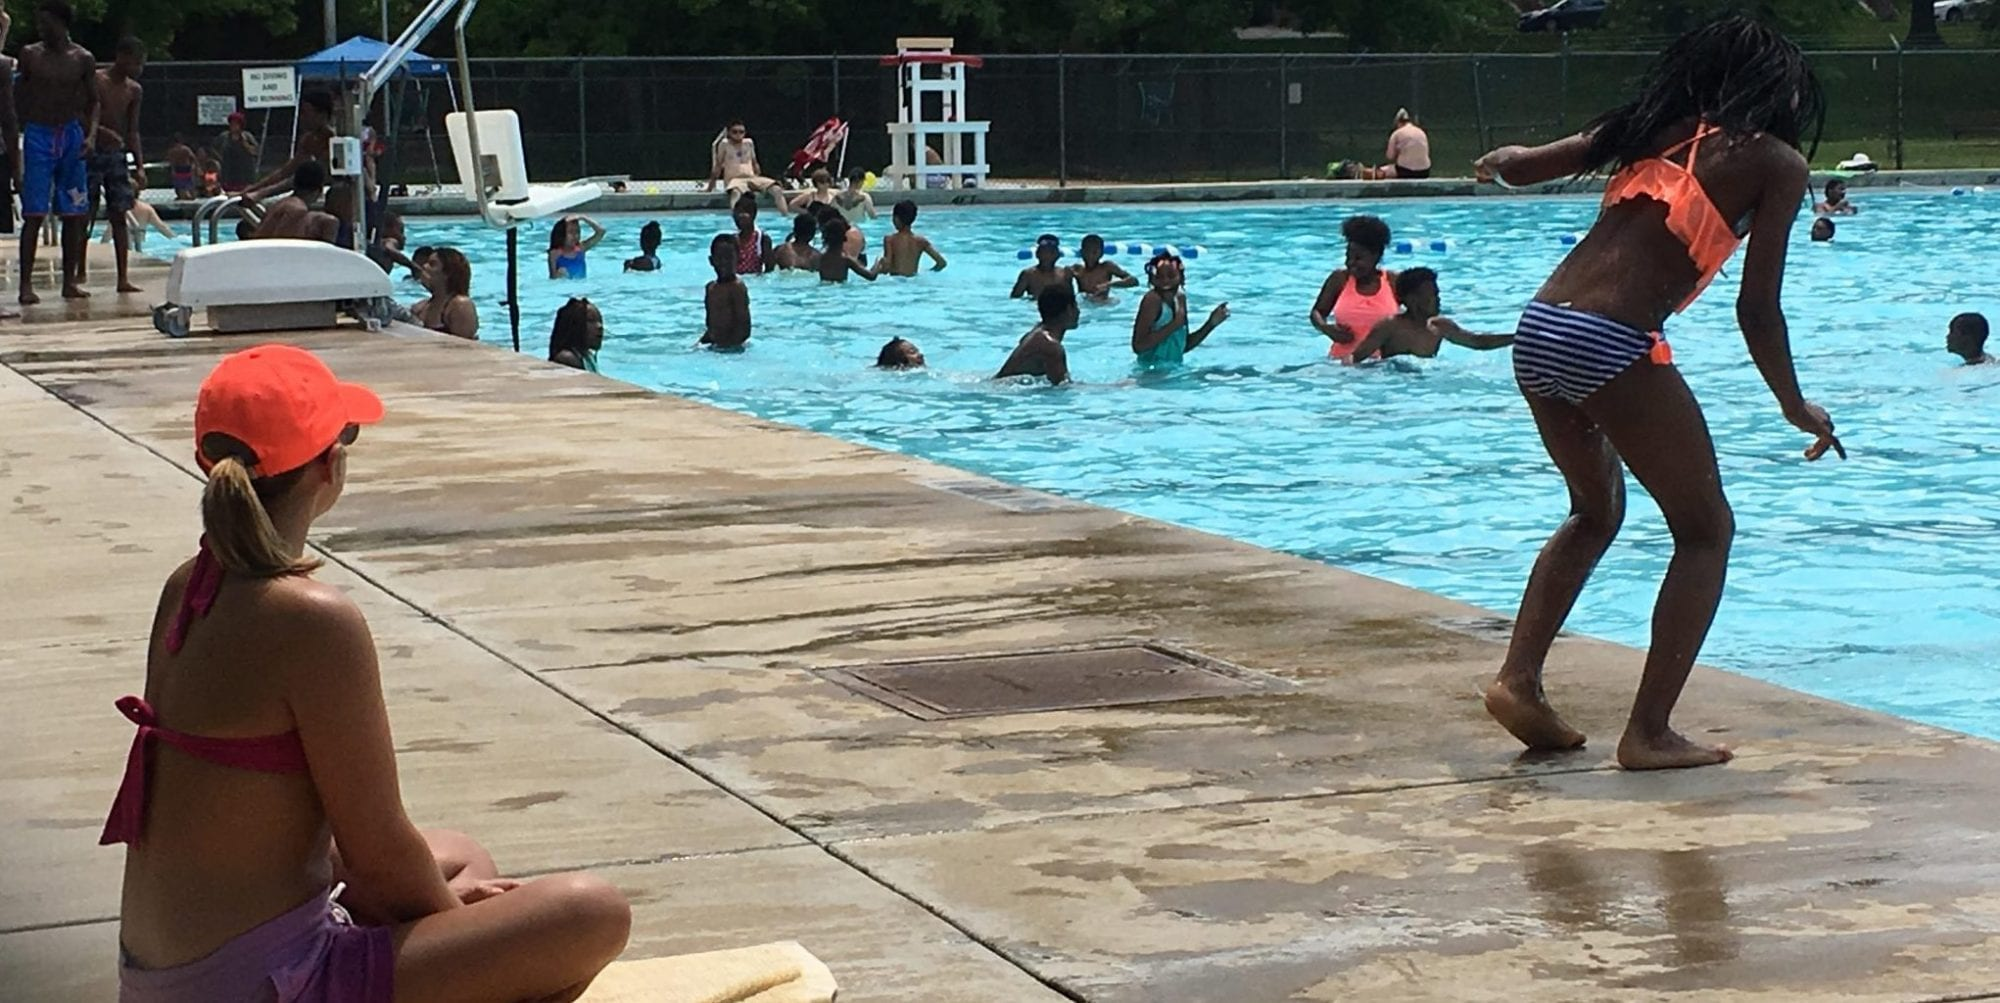 The pool at Marquette Park.